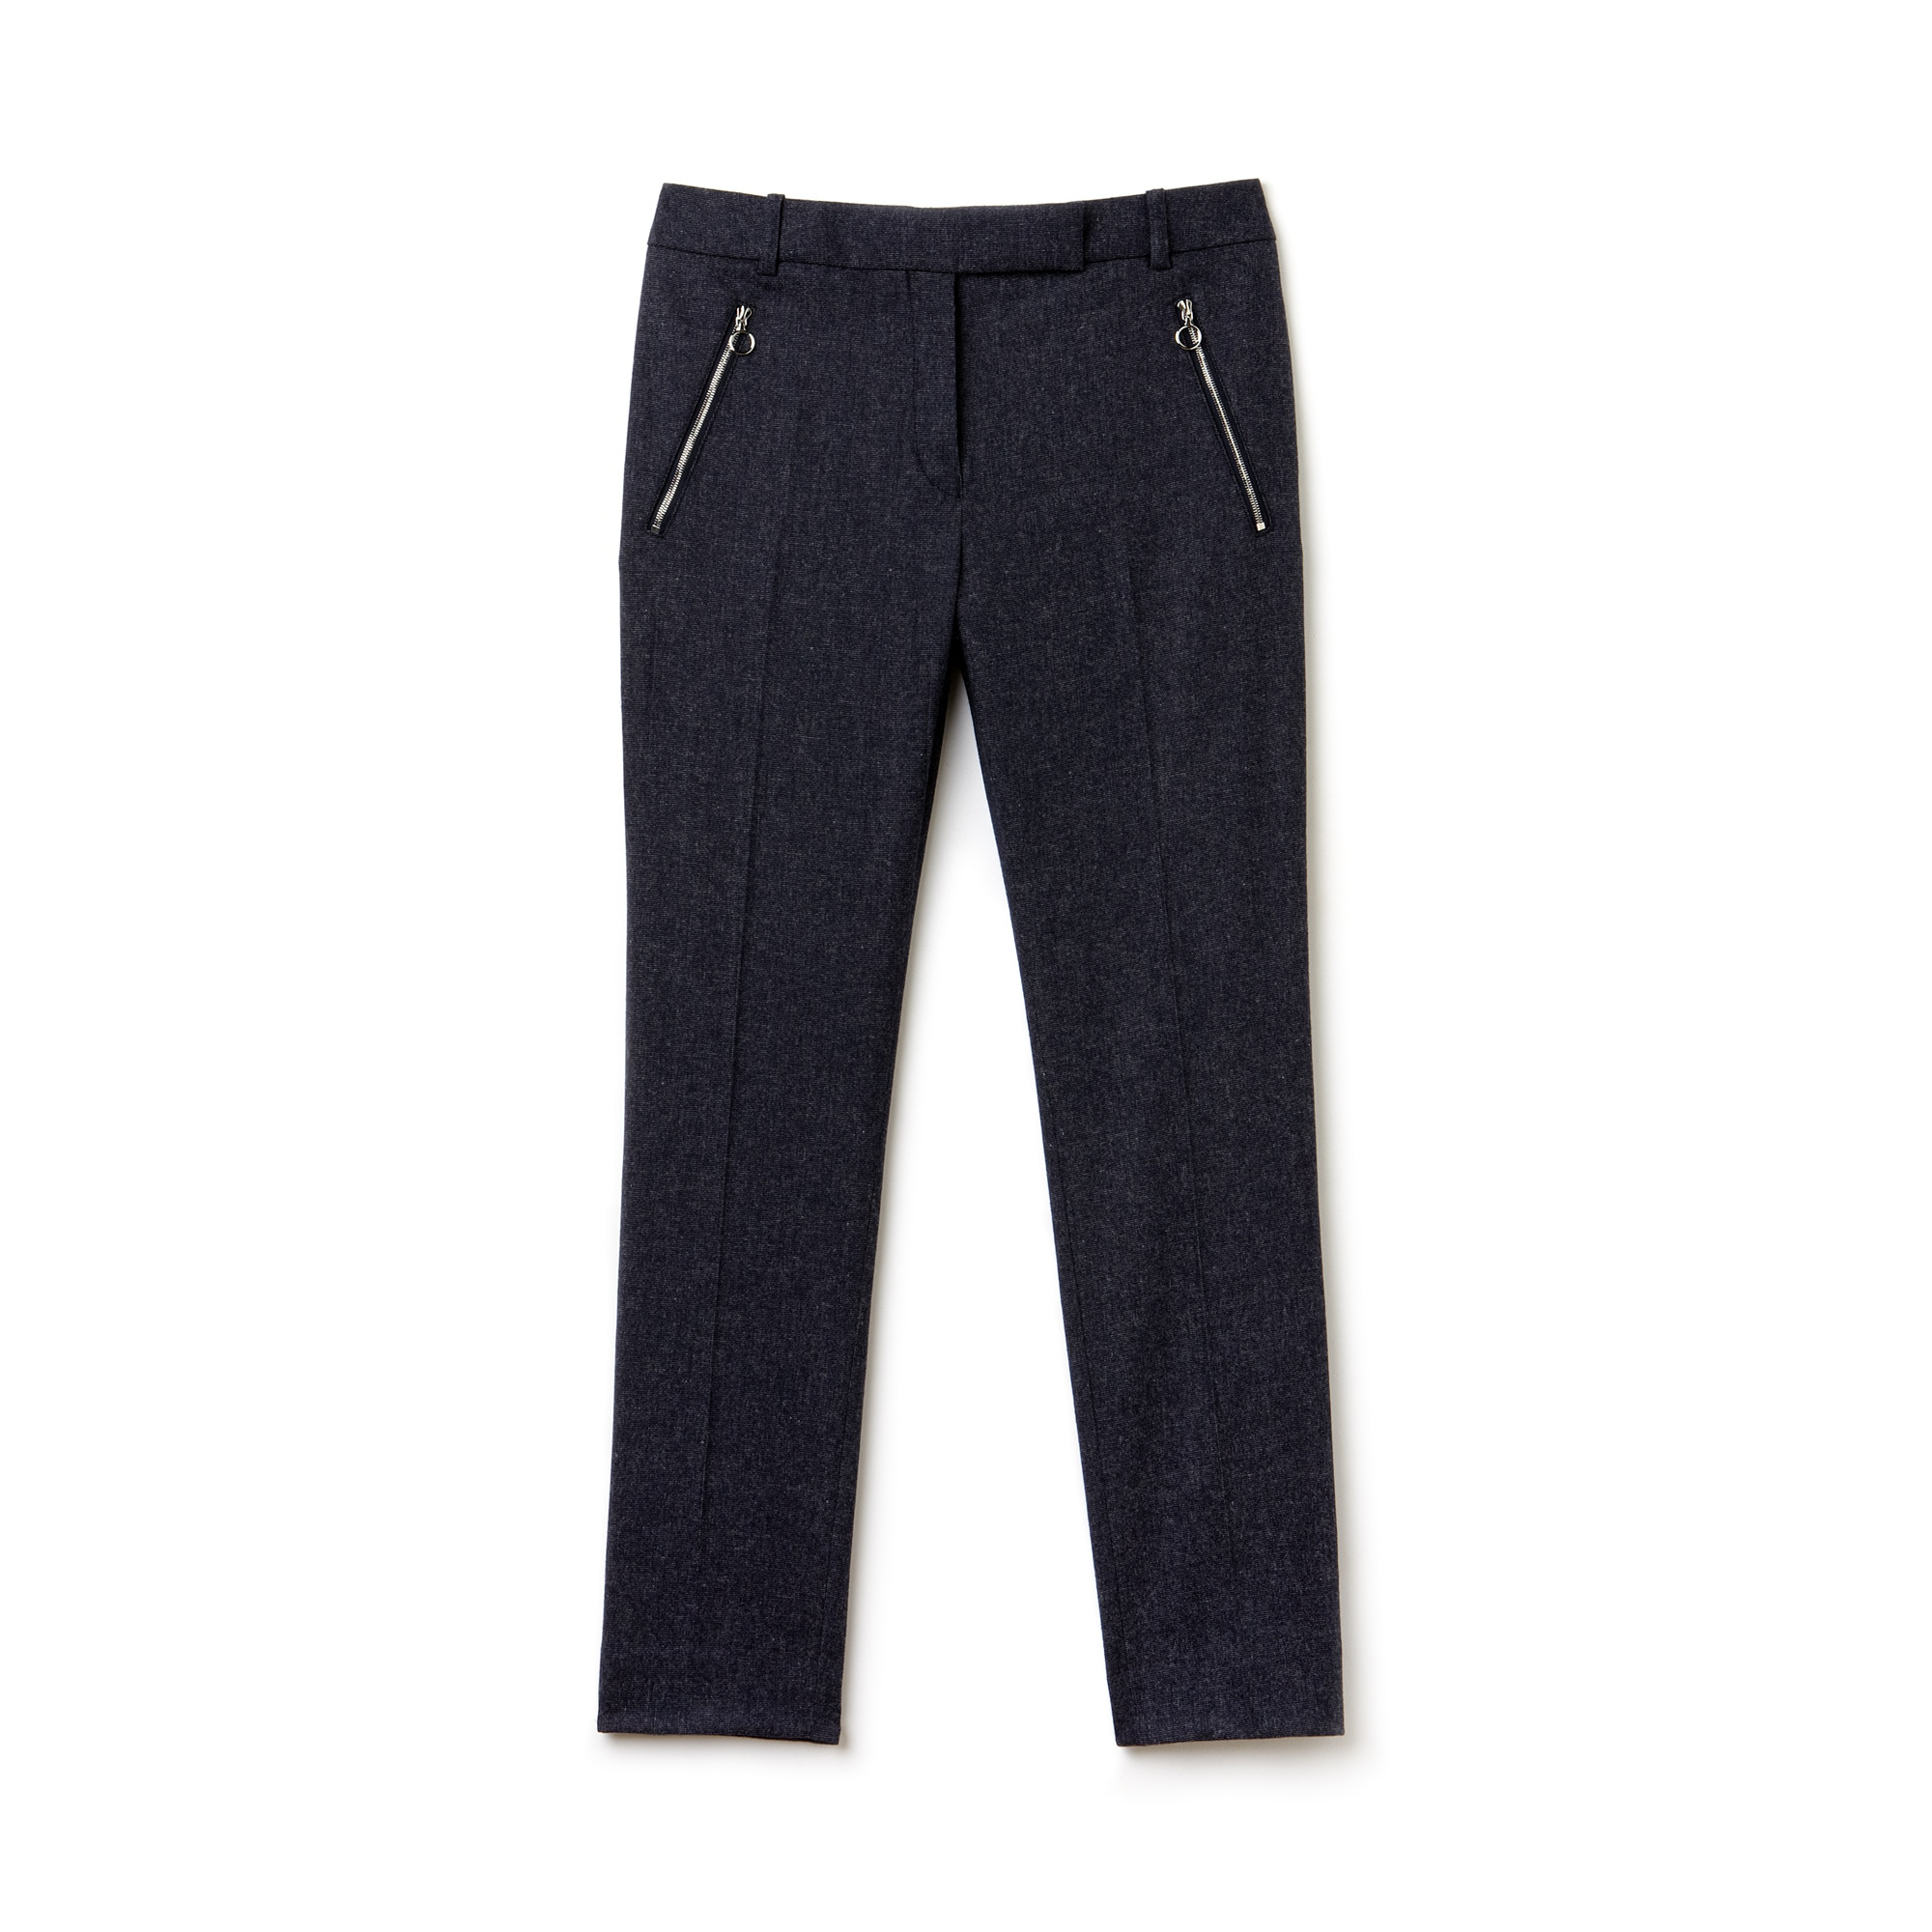 Women's Cotton Wool Twill Cropped Slim Fit Trousers